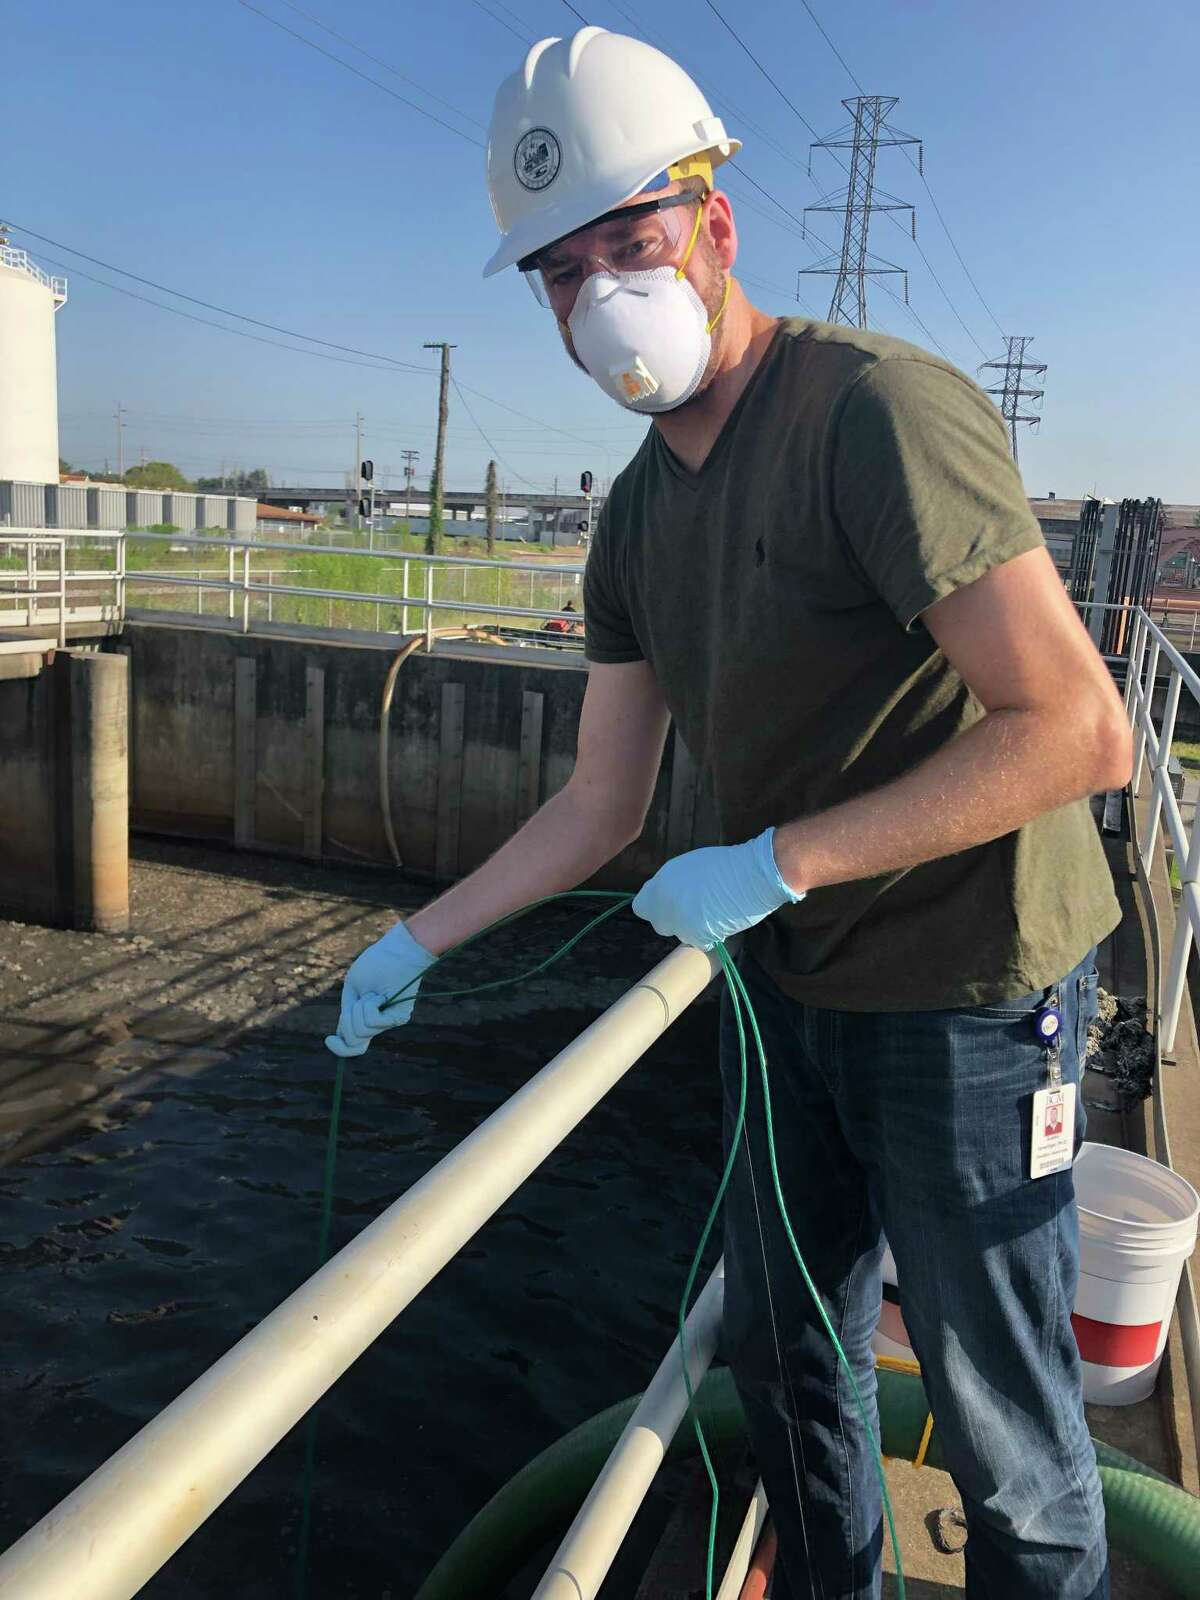 At Baylor College of Medicine, the TAILOR team finds bacteria phages in the city's wastewater and purifies them to become customized treatments for bacterial infections. During the pandemic, the team has worked with the city to test wastewater and target COVID hotspots.